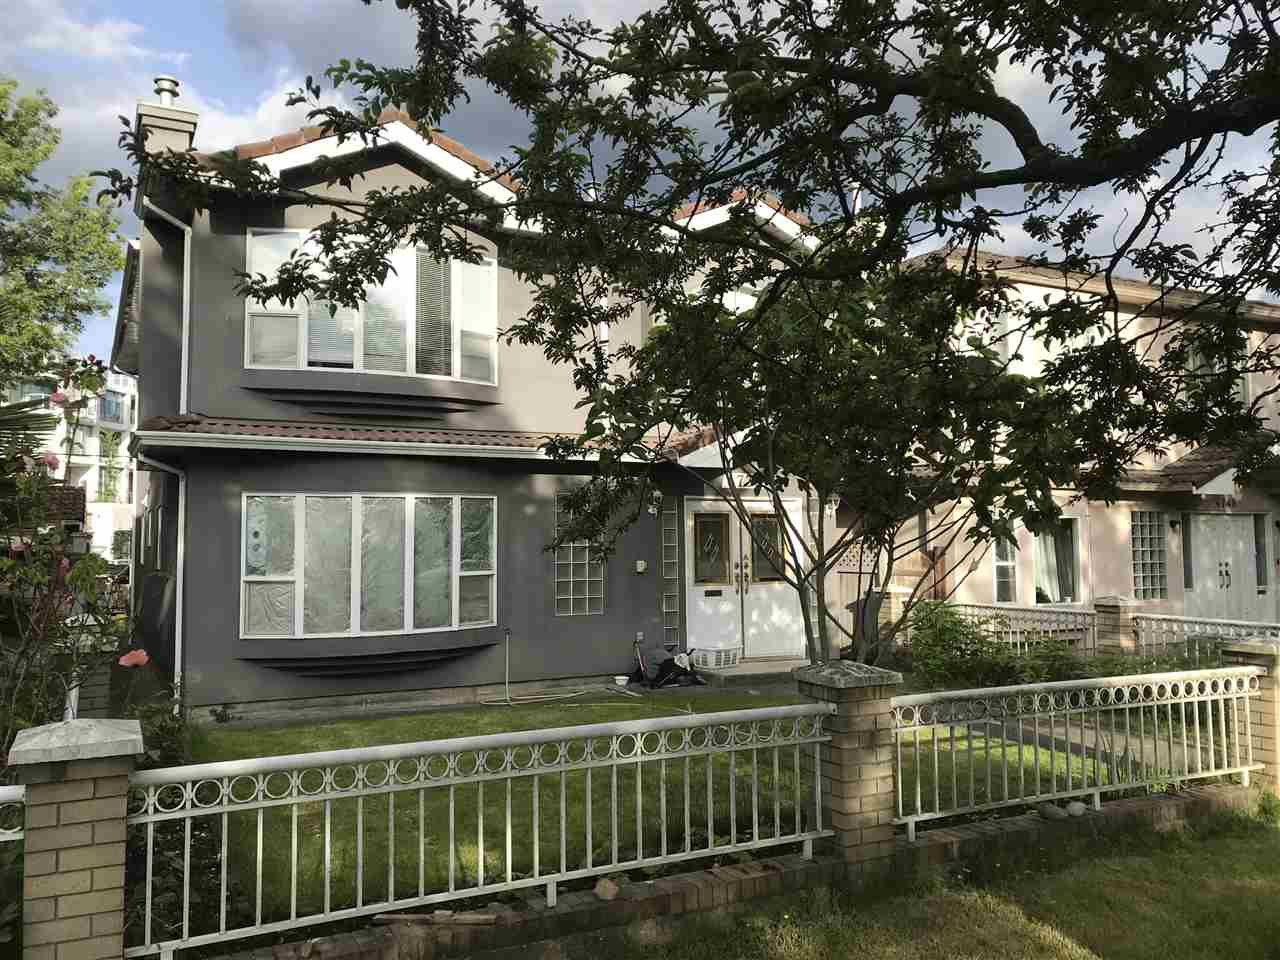 Main Photo: 4736 GLADSTONE Street in Vancouver: Victoria VE House for sale (Vancouver East)  : MLS®# R2463396